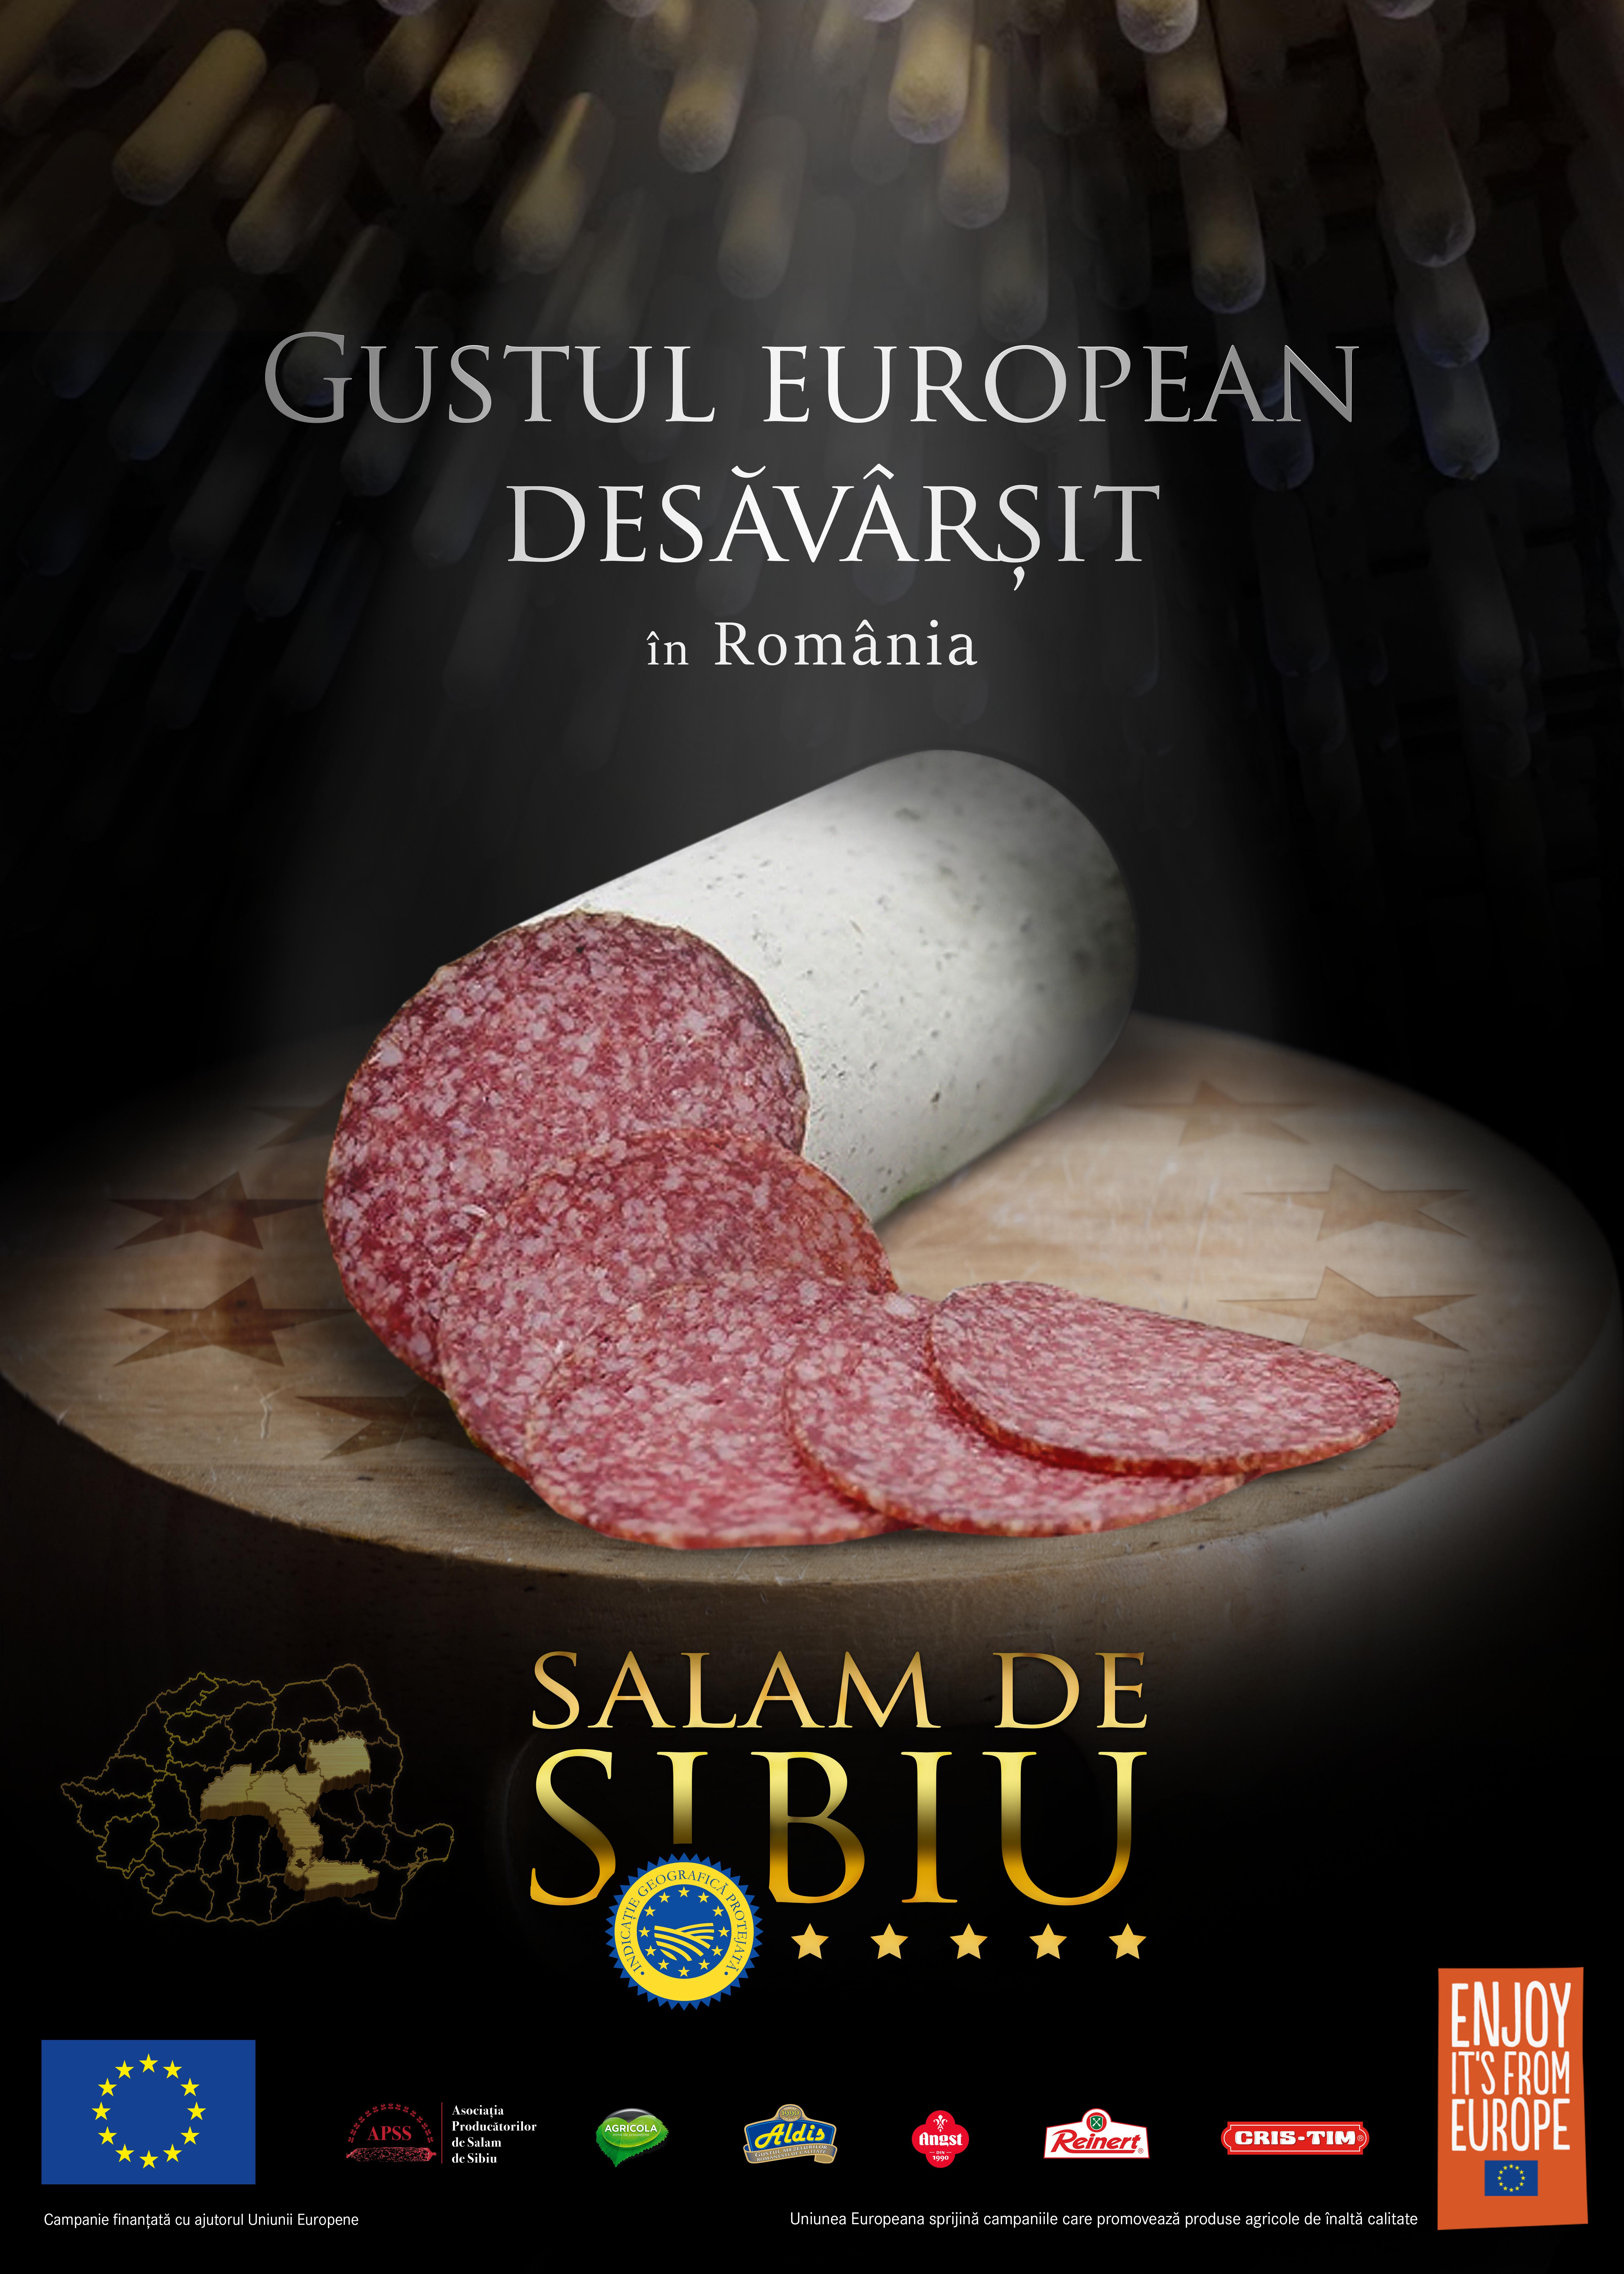 imagine Salam de Sibiu IGP proiect Enjoy It s from Europe 2019